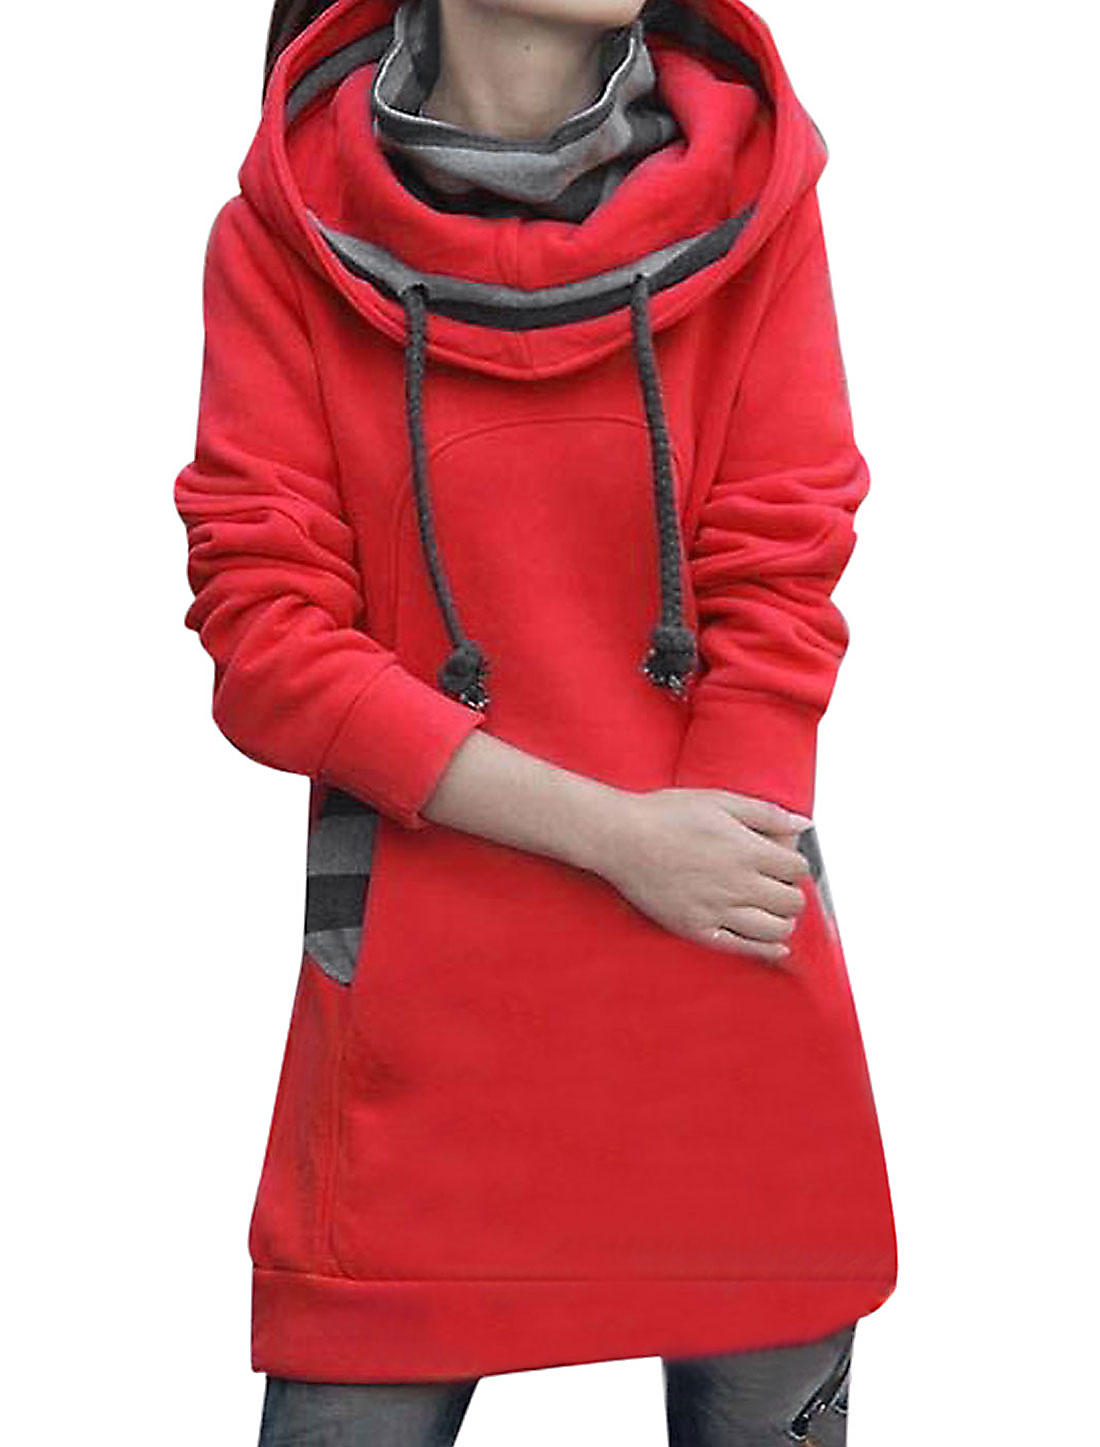 Women Drawstring Hooded Layered Tunic Sweatshirt Red M